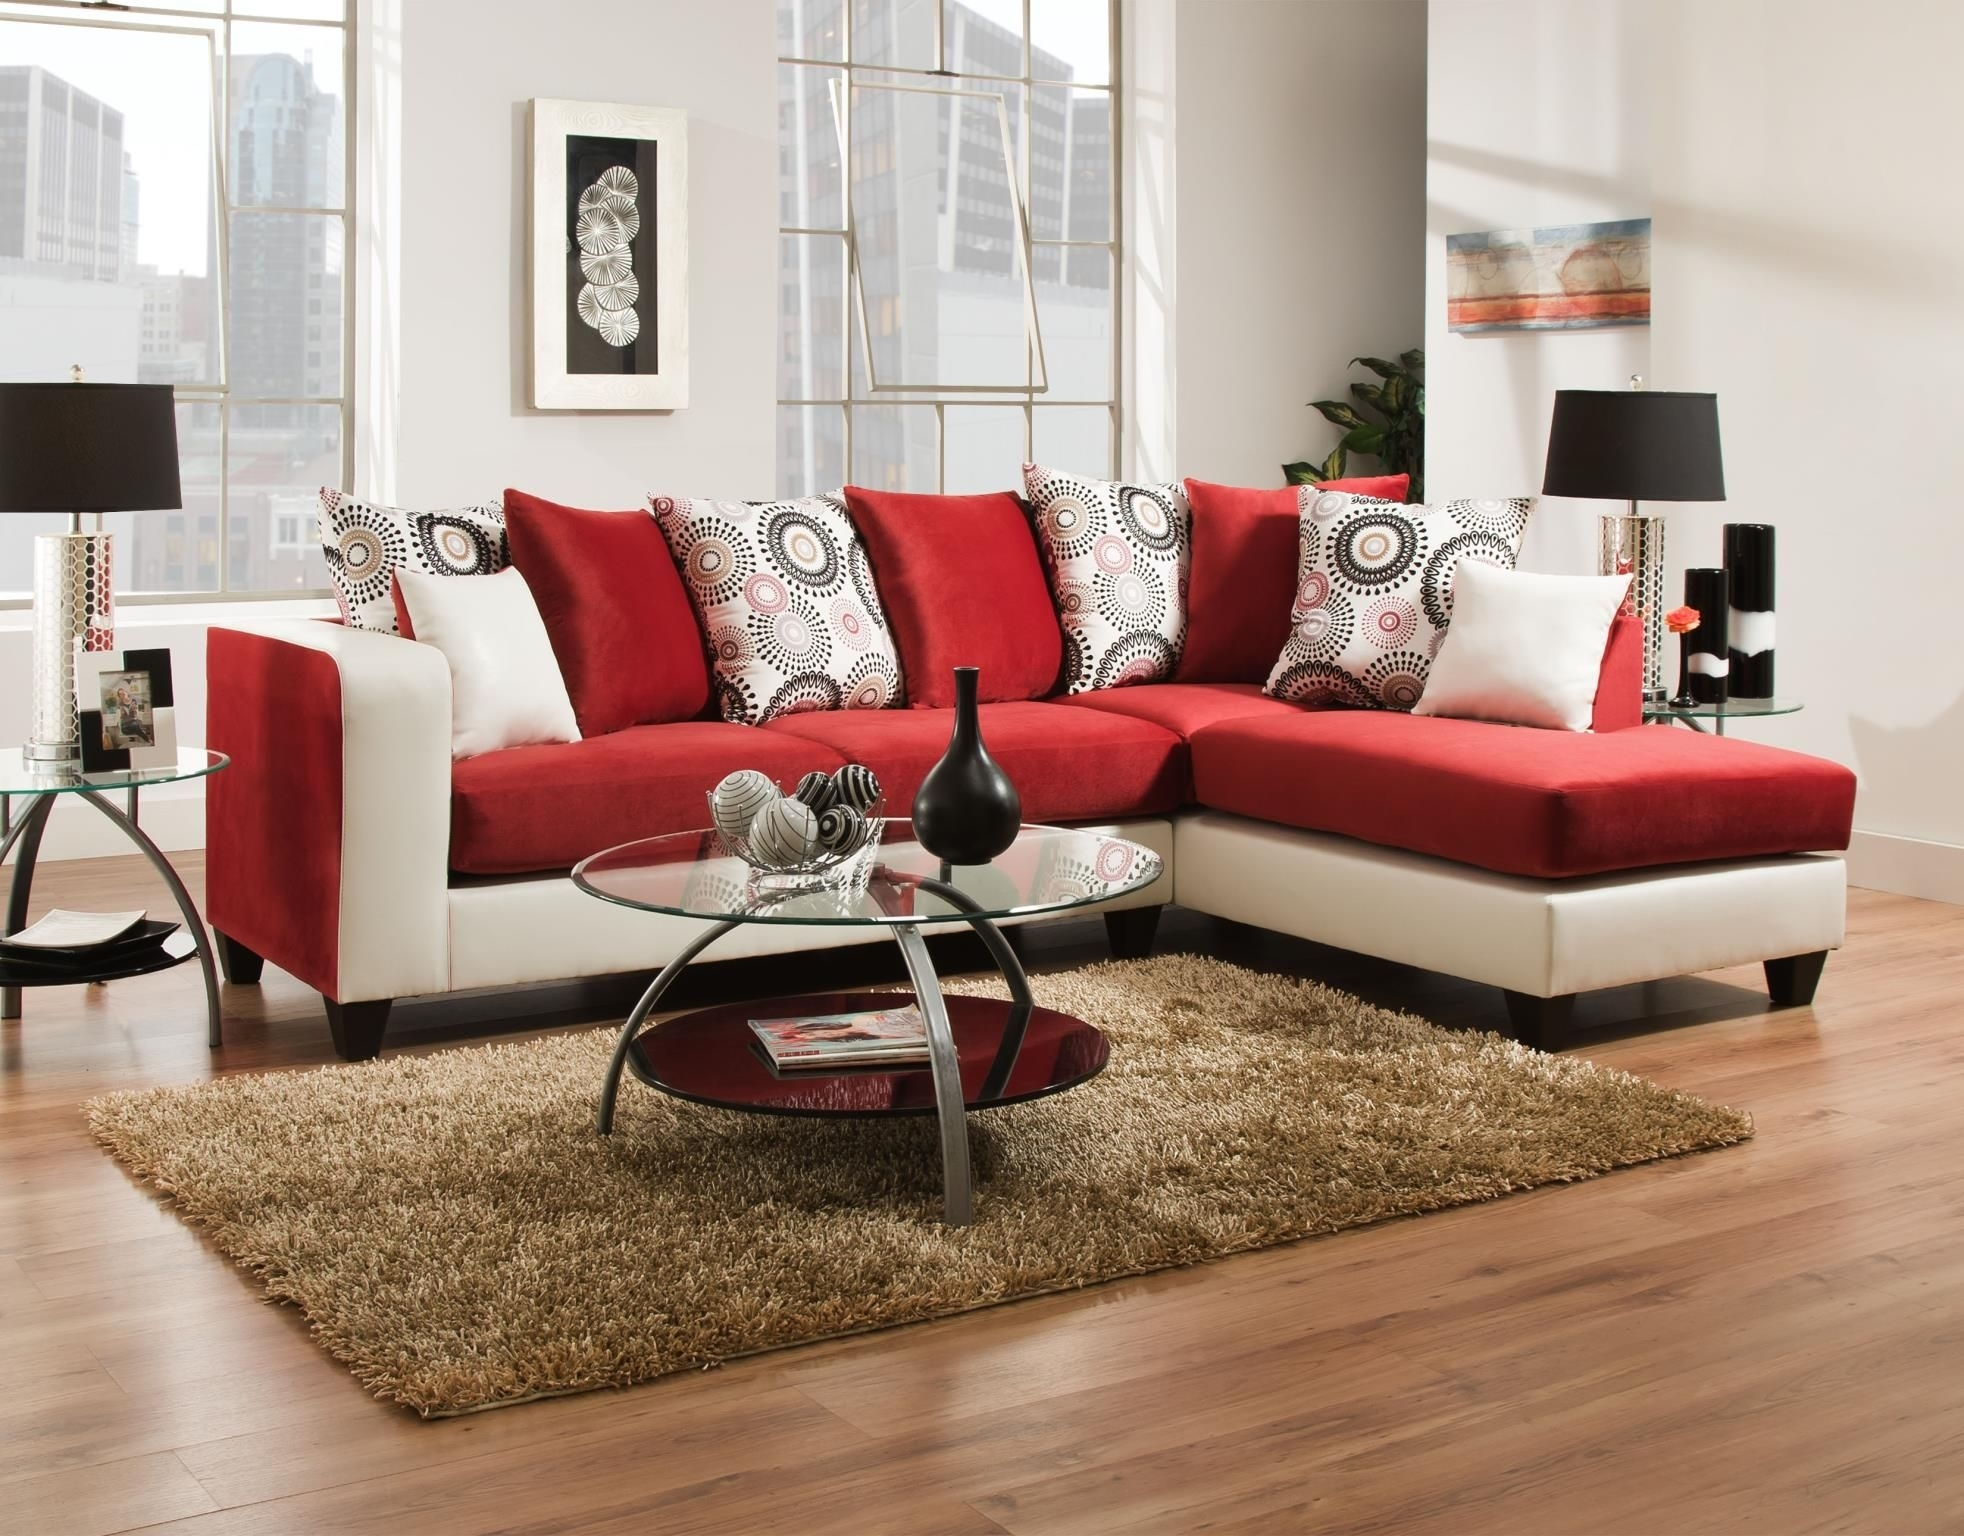 living room furniture tampa 10 collection of tampa fl sectional sofas sofa ideas 16025